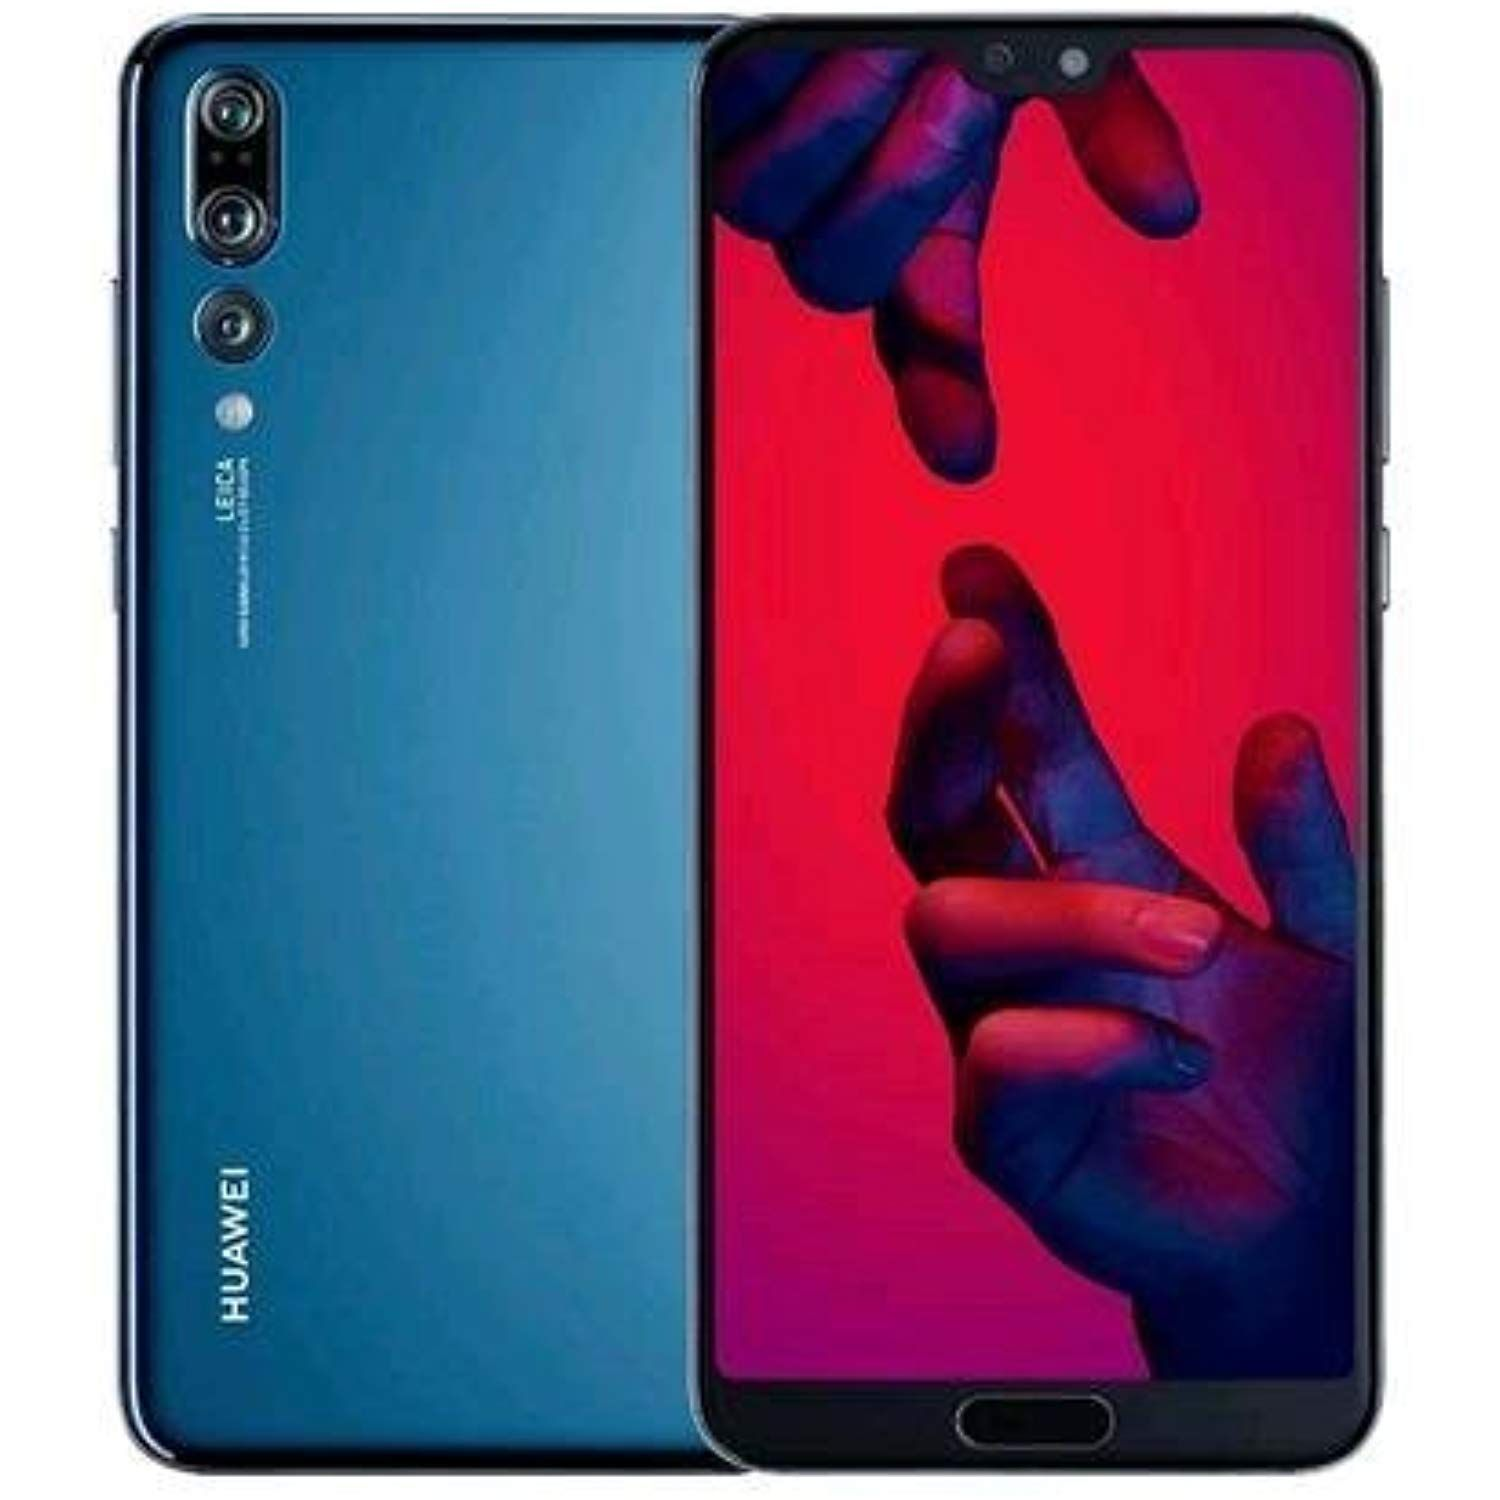 Huawei P20 Pro 128gb Single Sim Factory Unlocked 4g Lte Smartphone Midnight Blue International Version You Can Get More Details By Clicking On The 1080p